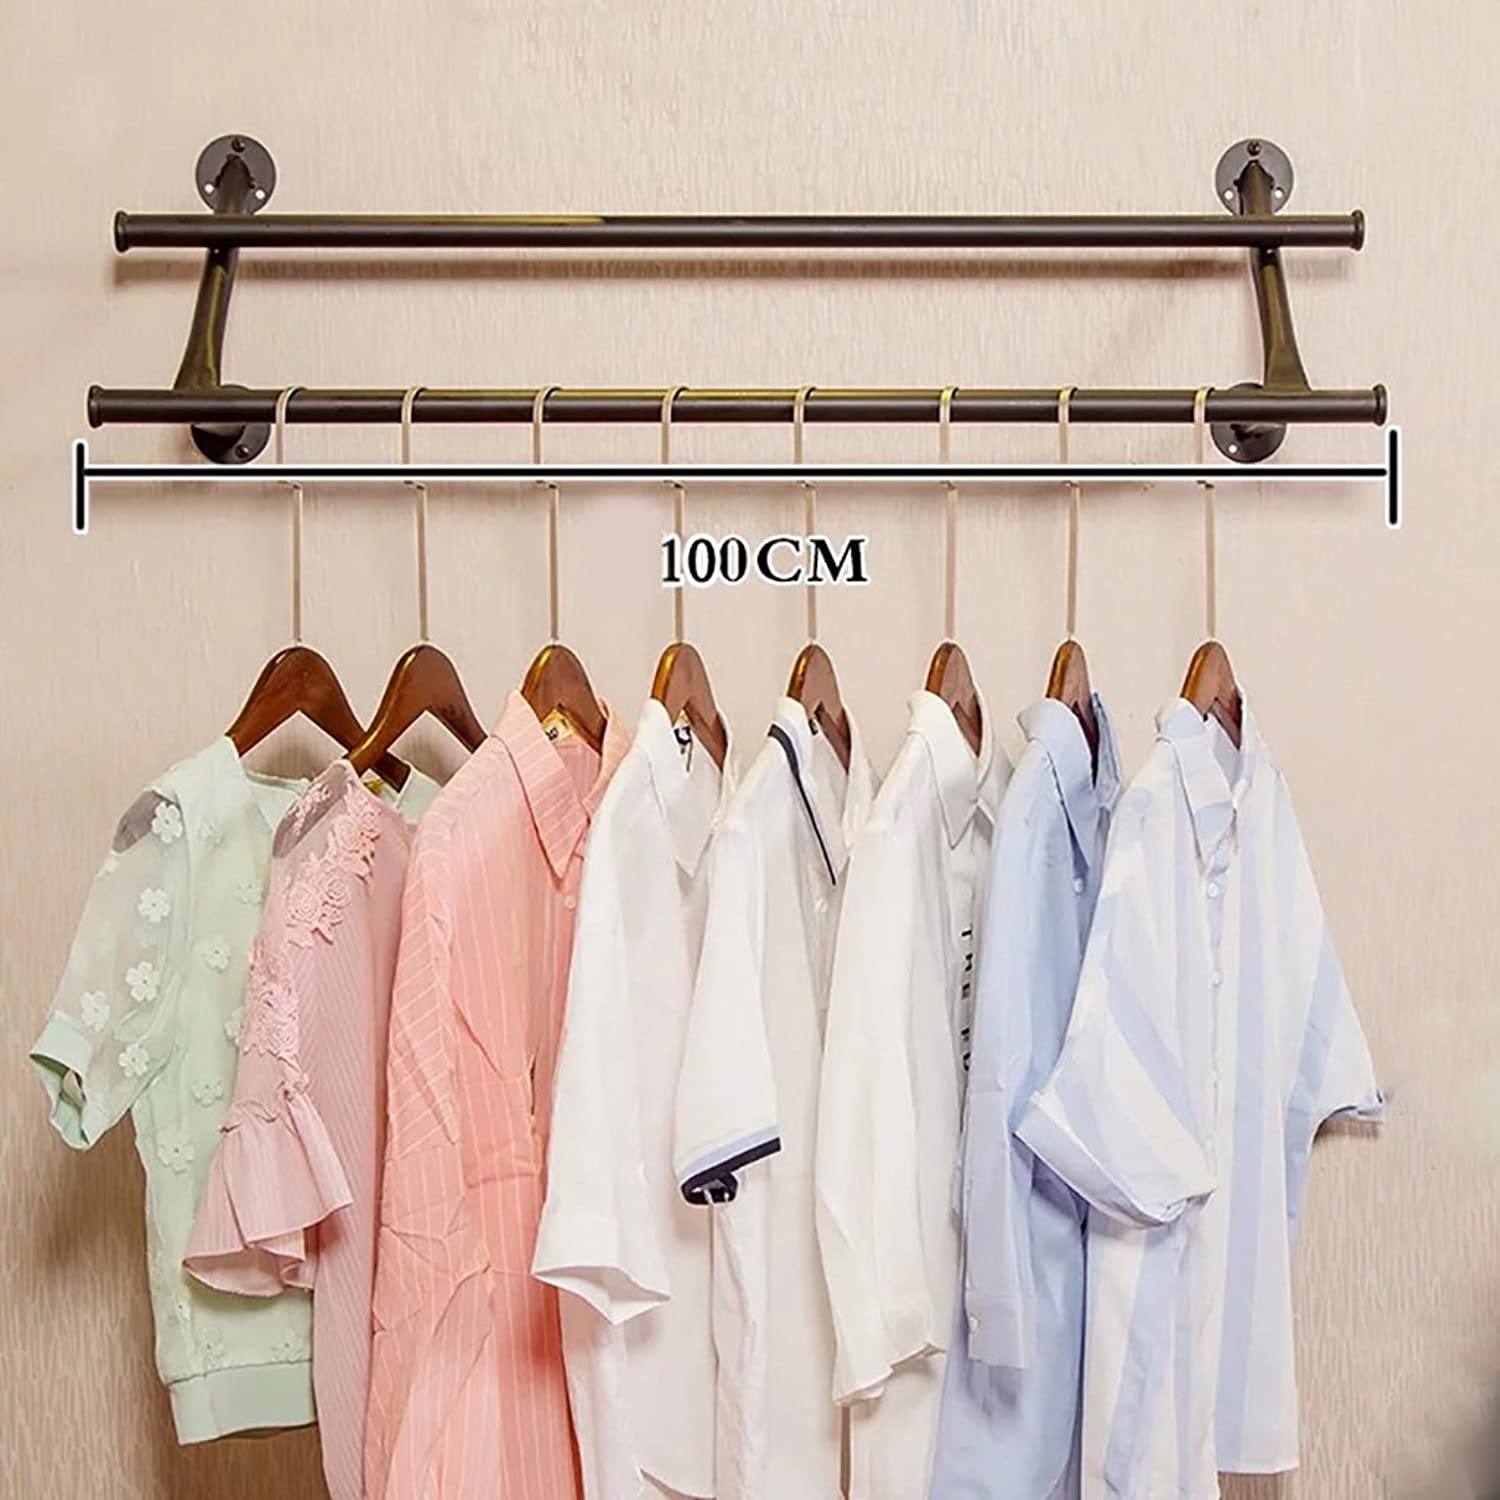 Coat Racks Clothing Store Clothing Display Stand Retro Iron Wall Mounted Side-Mounted Hanging Racks Hanging Racks Shelves Racks (Size   100CM)